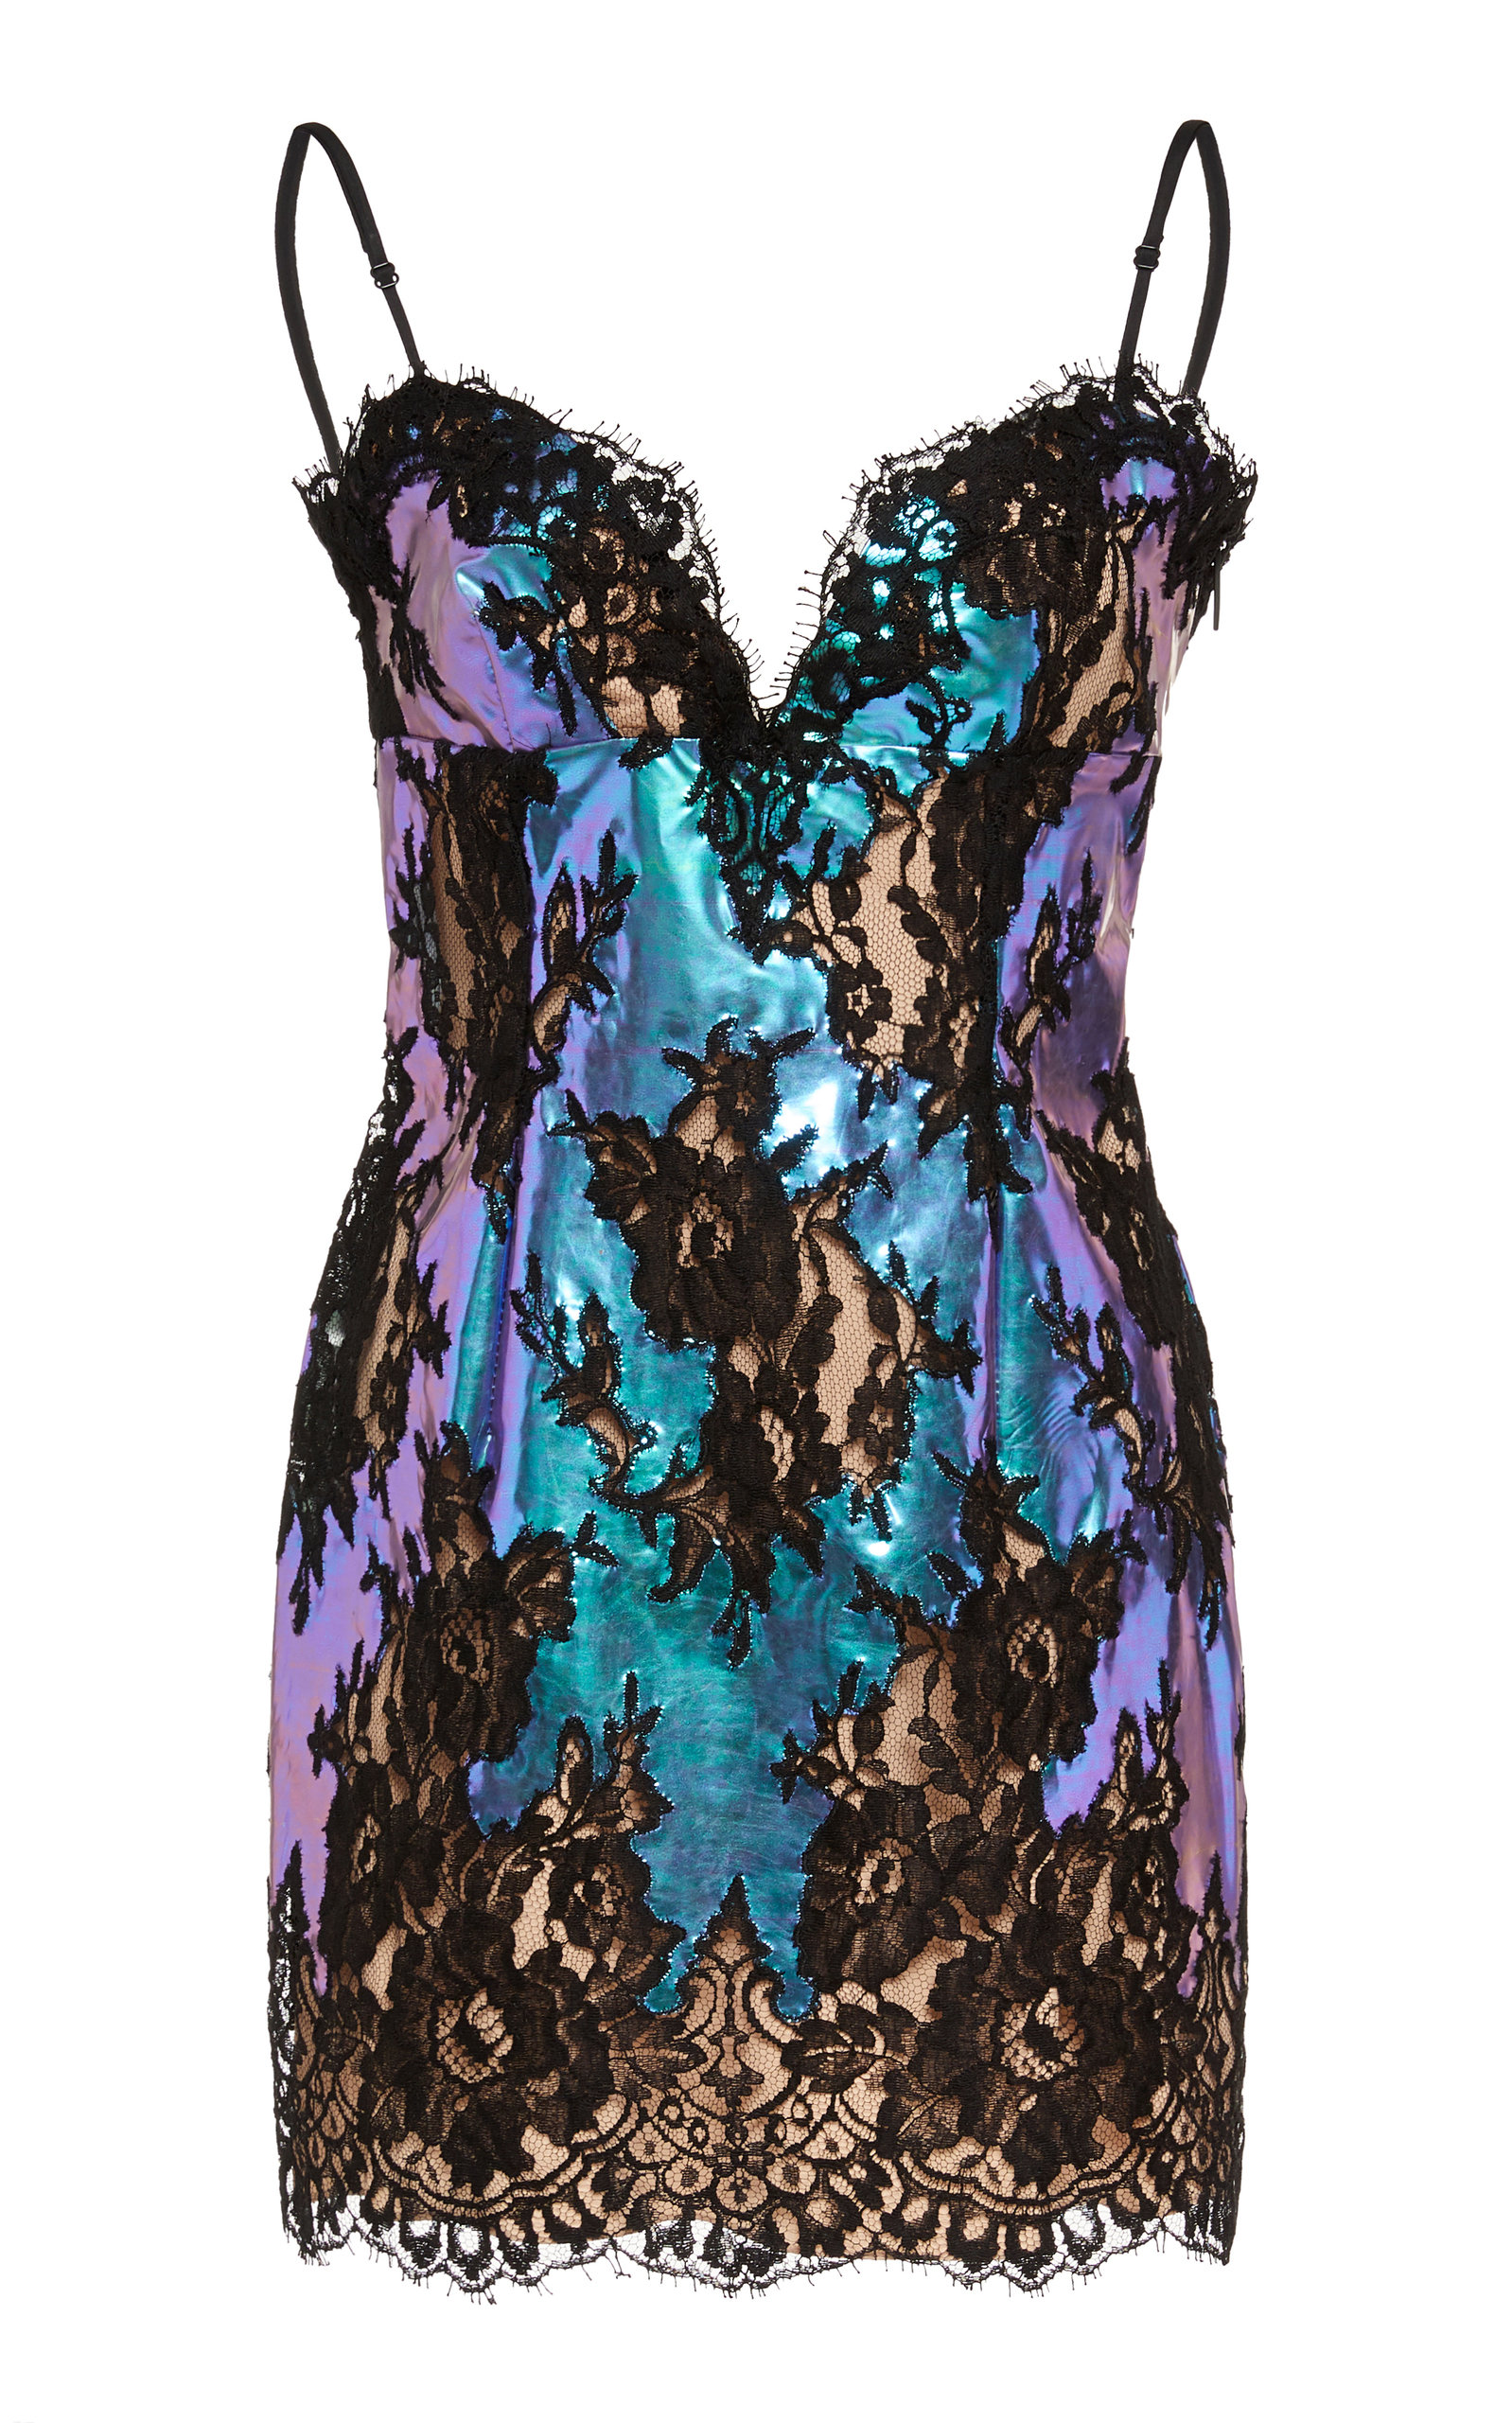 Buy Christopher Kane Lace-Trimmed Metallic Mini Dress online, shop Christopher Kane at the best price